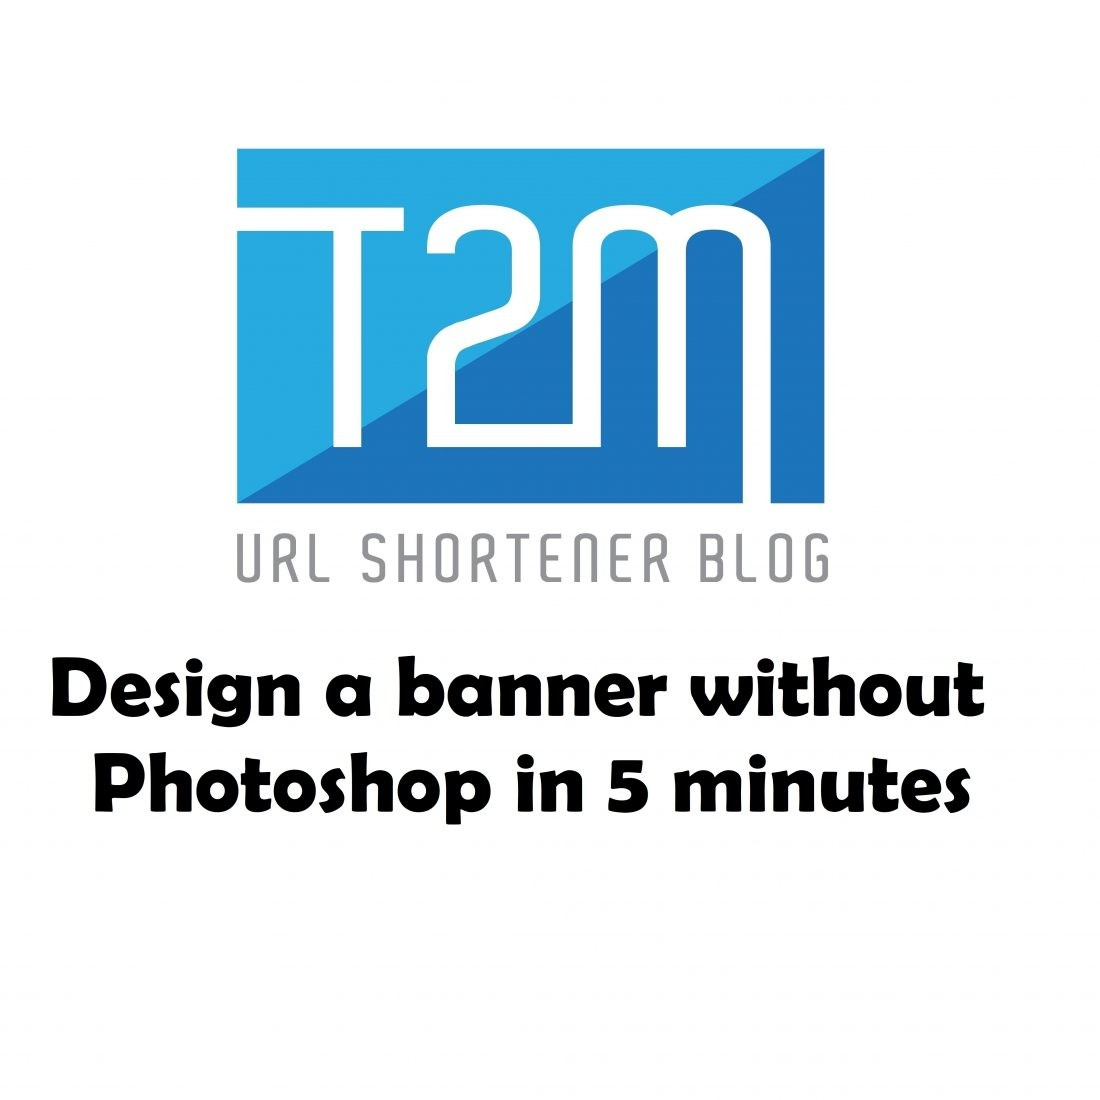 How to design a banner without Photoshop in 5 minutes